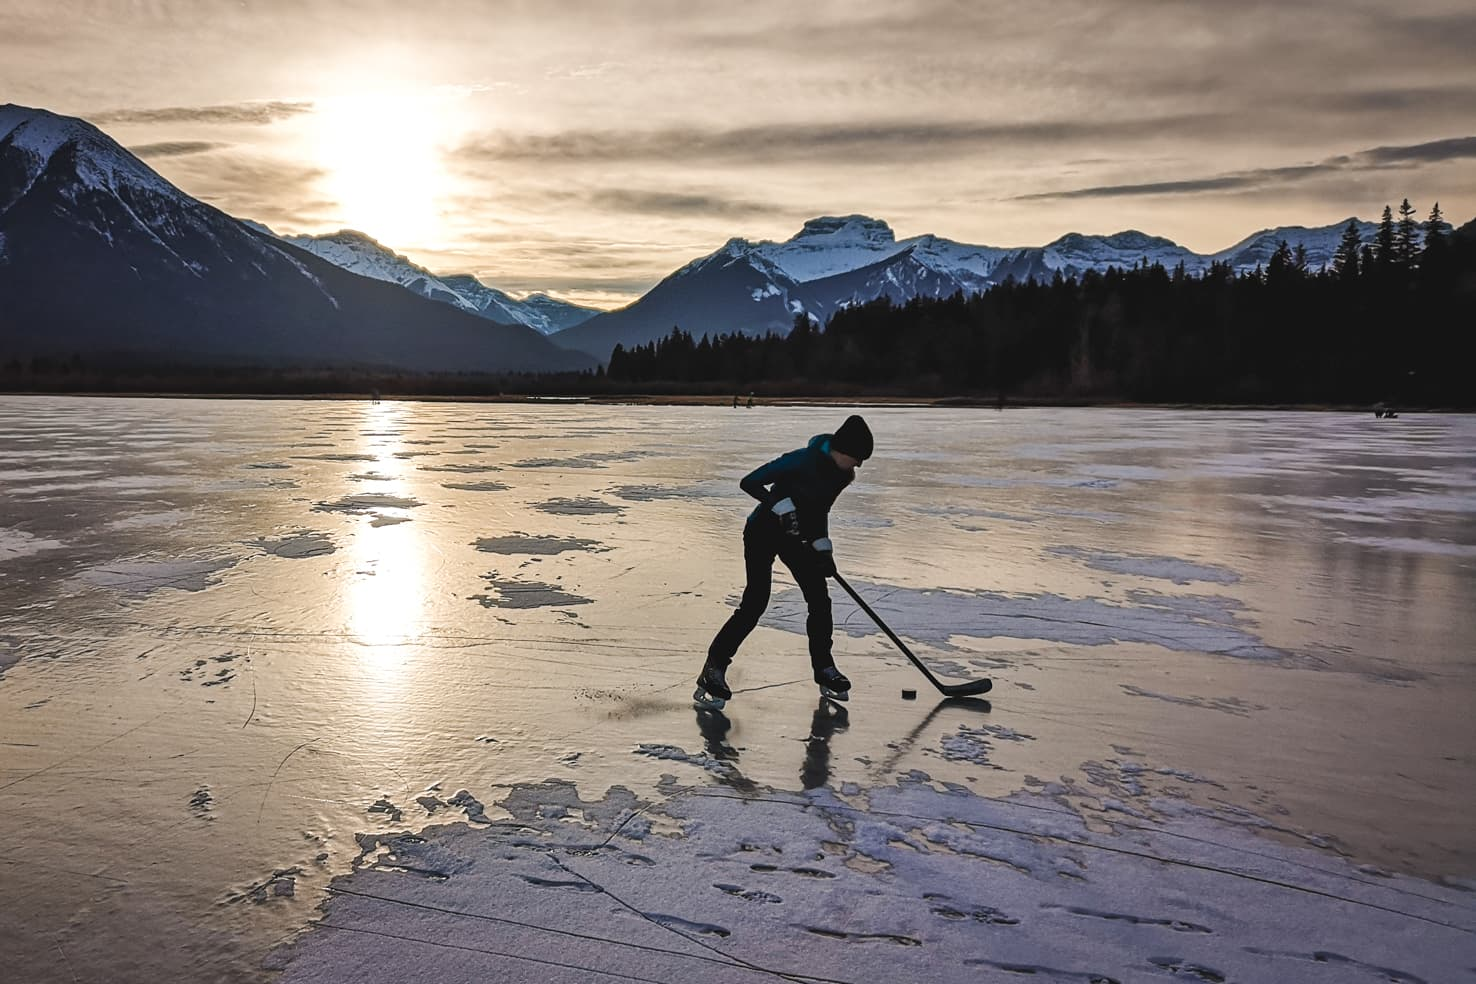 Things to do in Jasper National Park - 41 Play ice hockey on a frozen lake